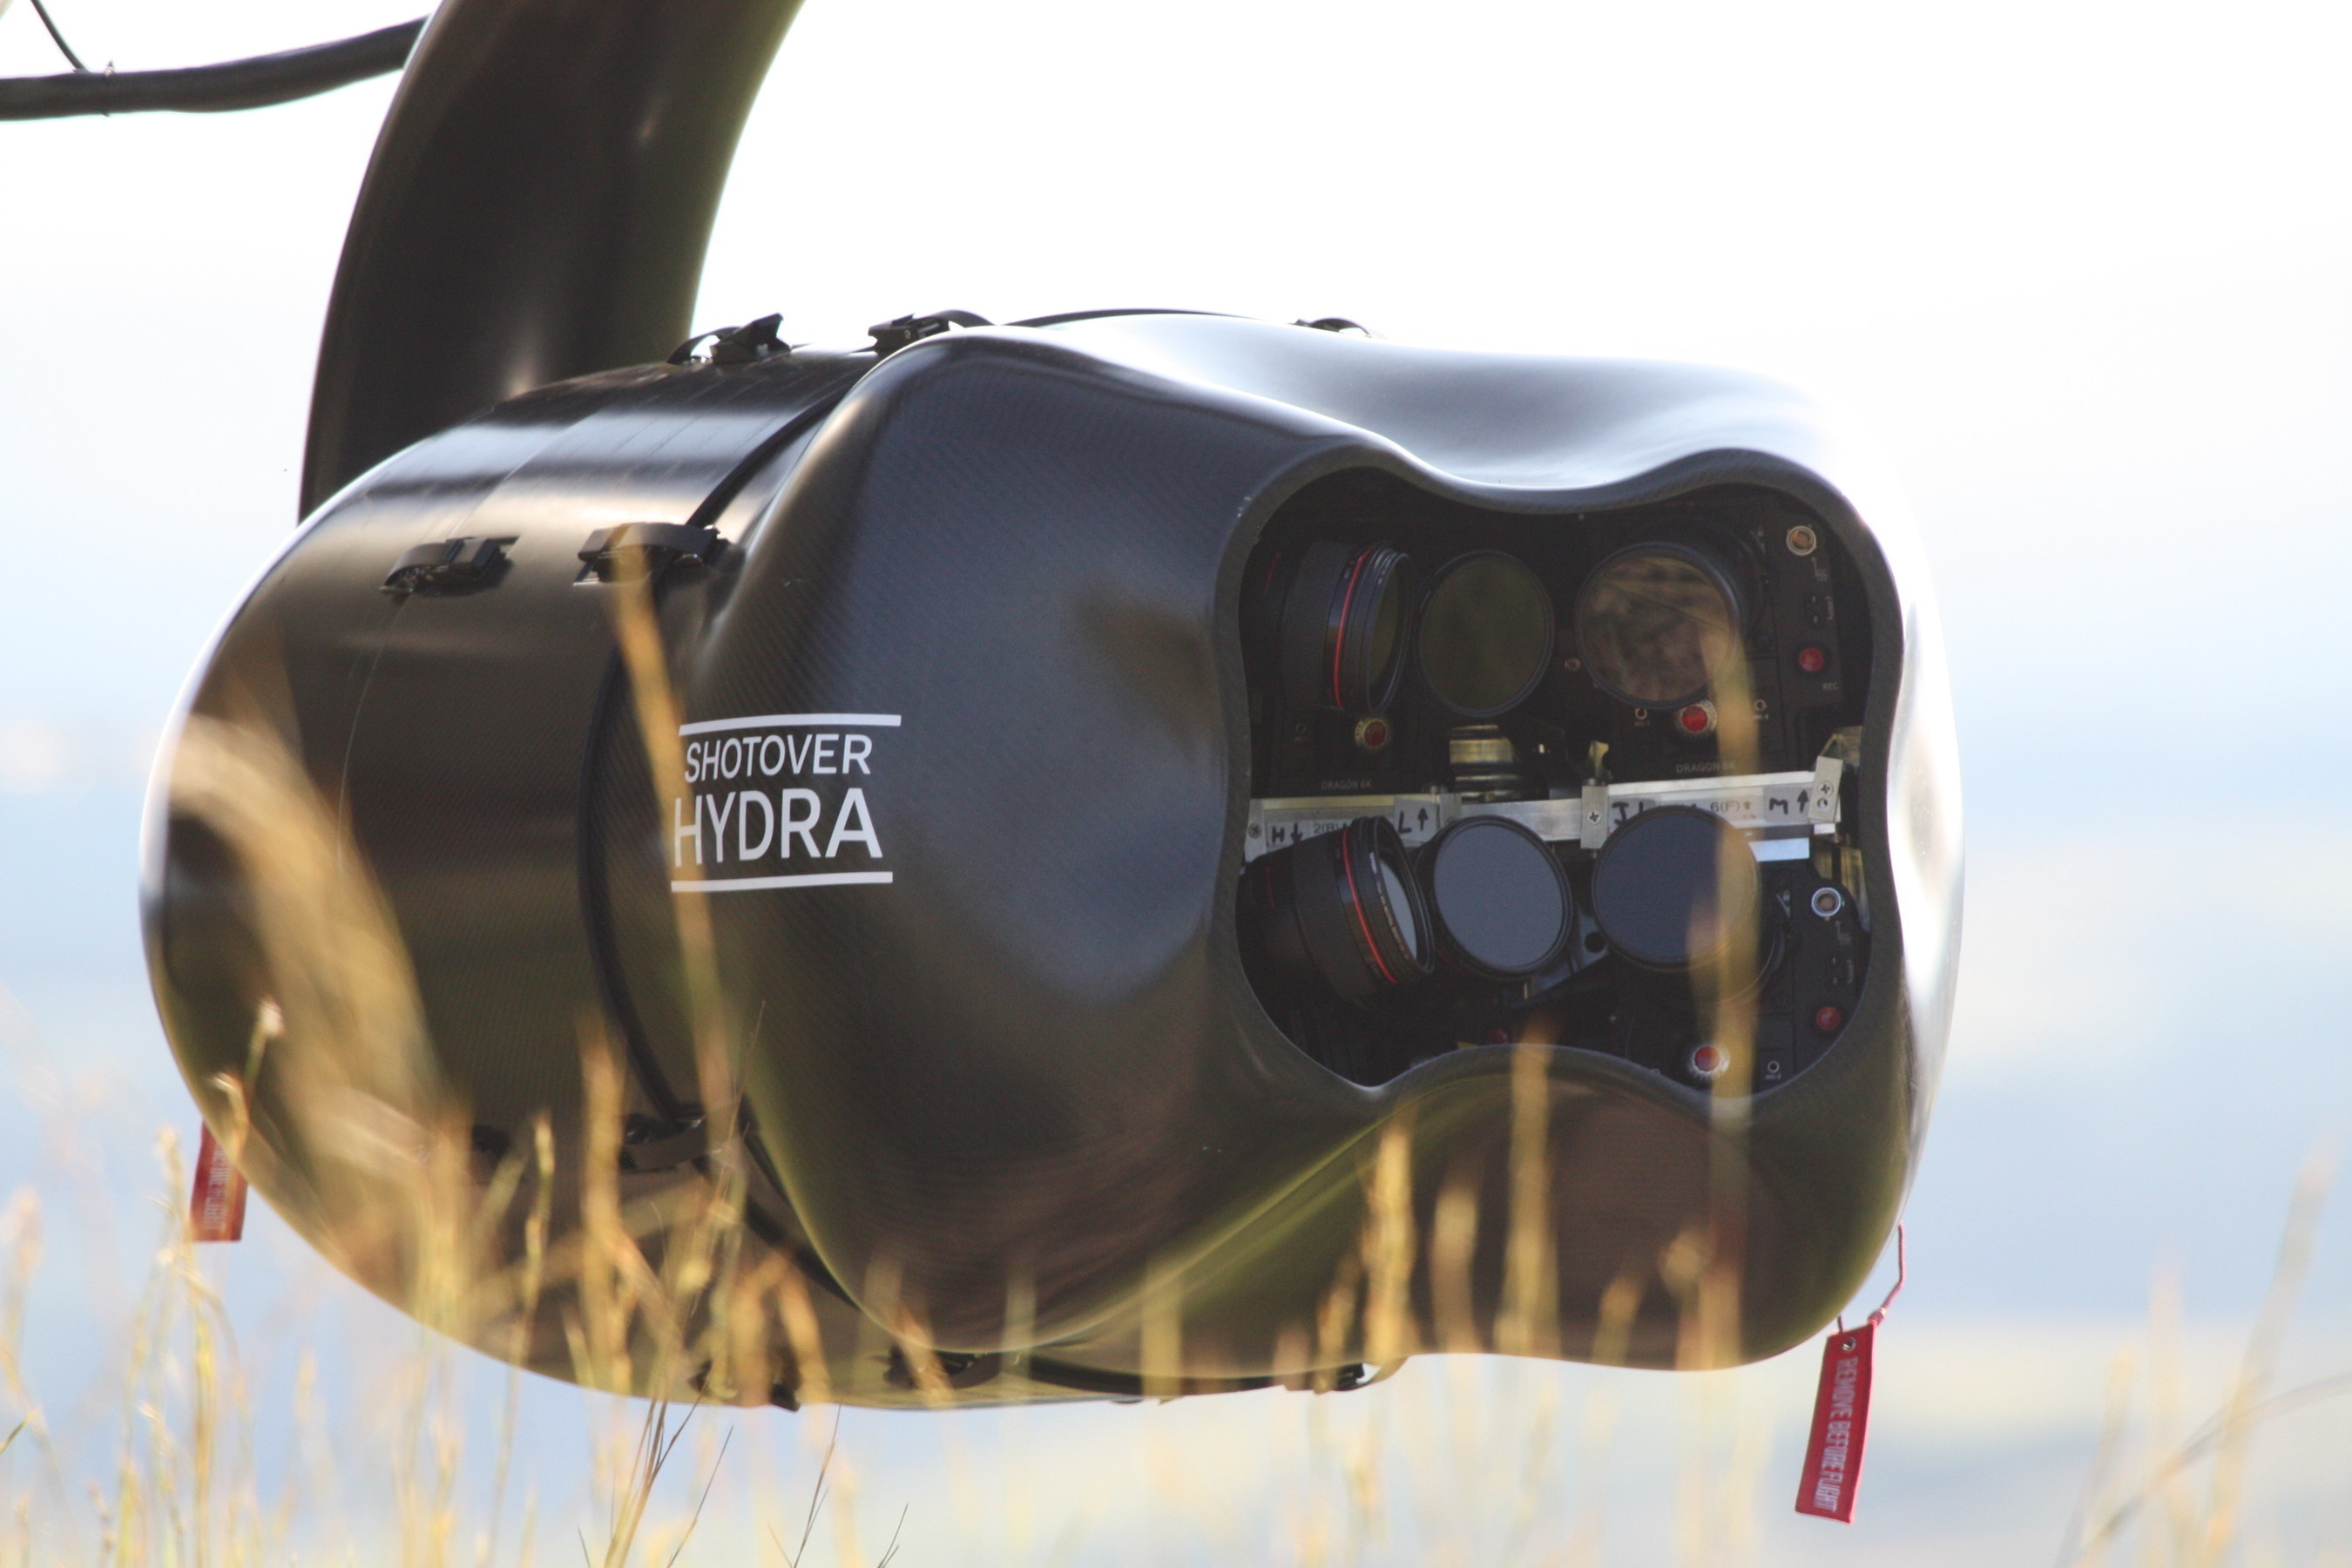 SHOTOVER Hydra, Six Camera, Gyrostabilized Imaging Platform for the Motion Picture Visual Effects Industry. ...